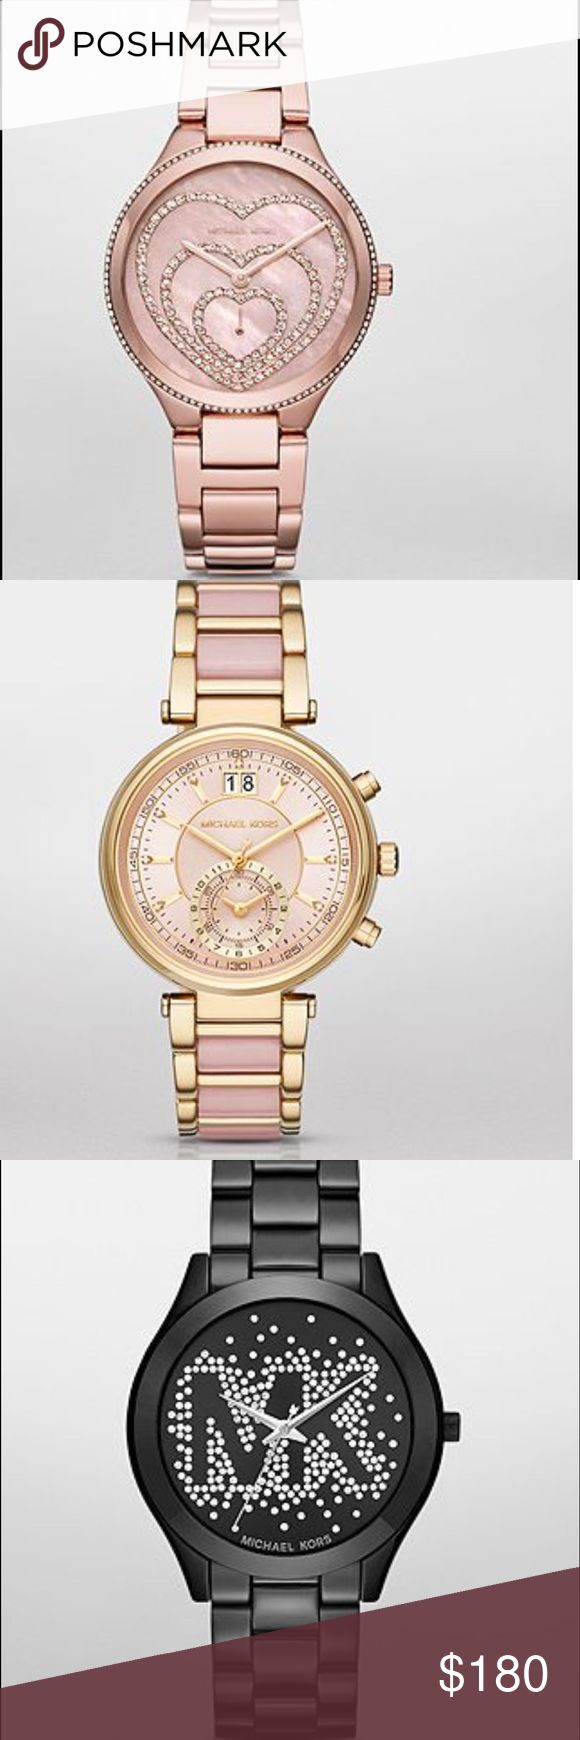 Michael kors watches Ready for your fashion watch. Price is for each watch and 🅿🅿 only price shipping is throw here Michael Kors Accessories Watches